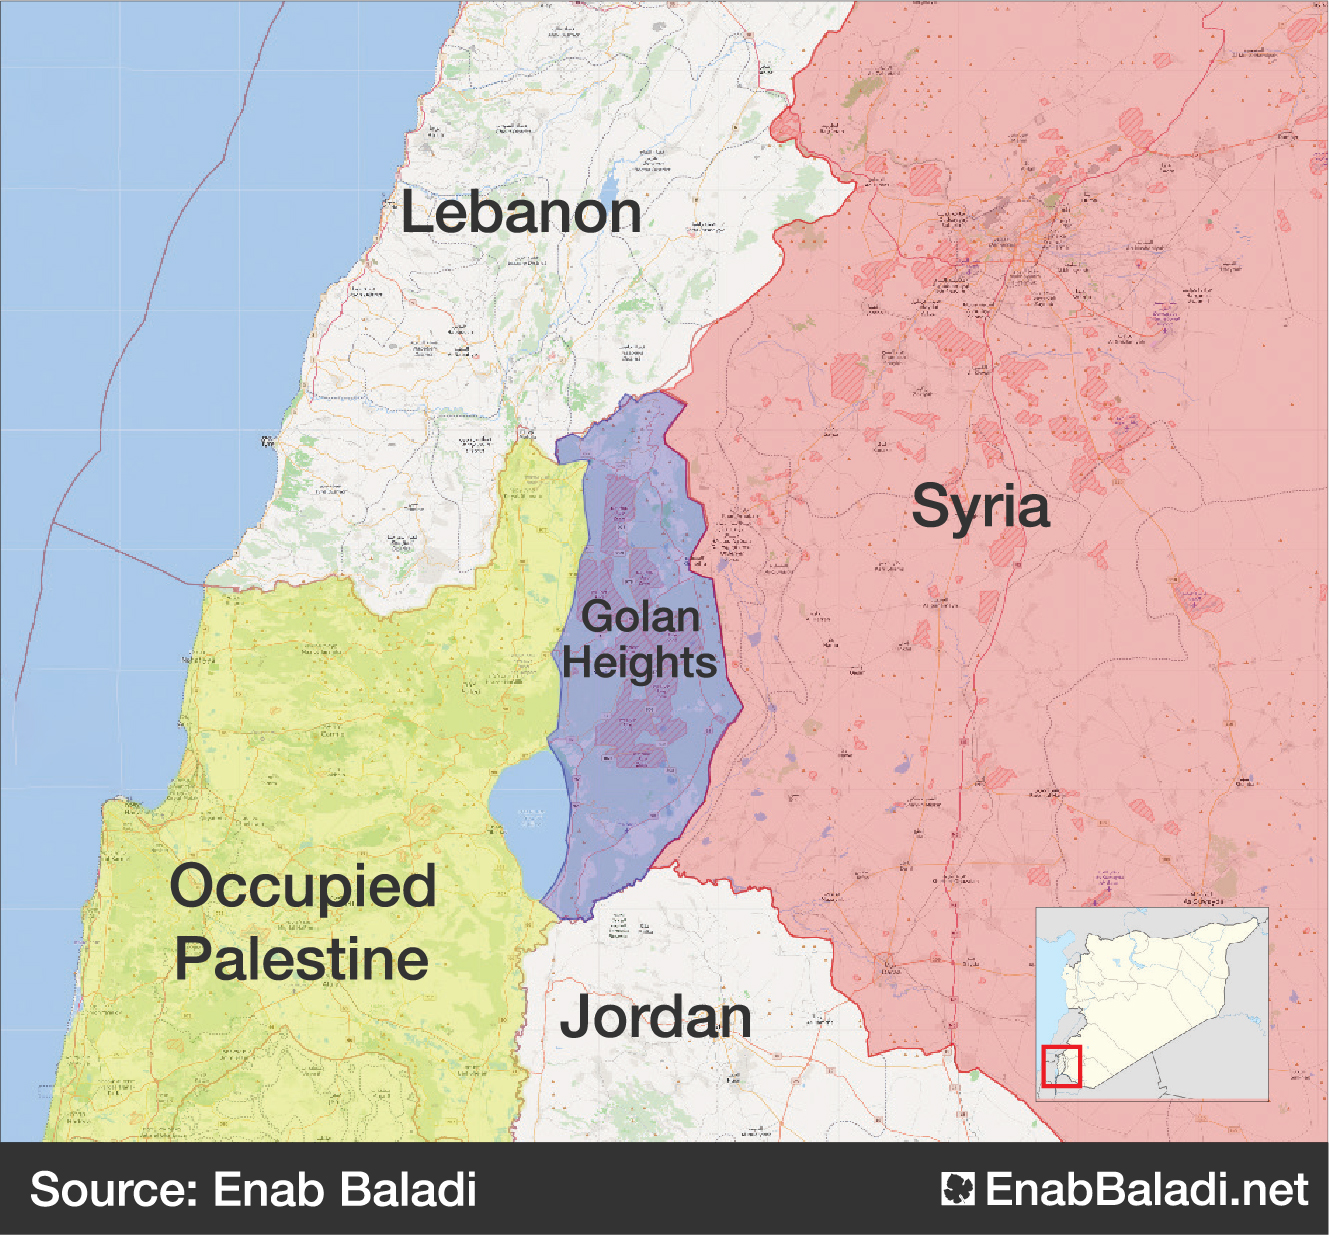 Map showing the location of the Golan Heights (modification by Enab Baladi)